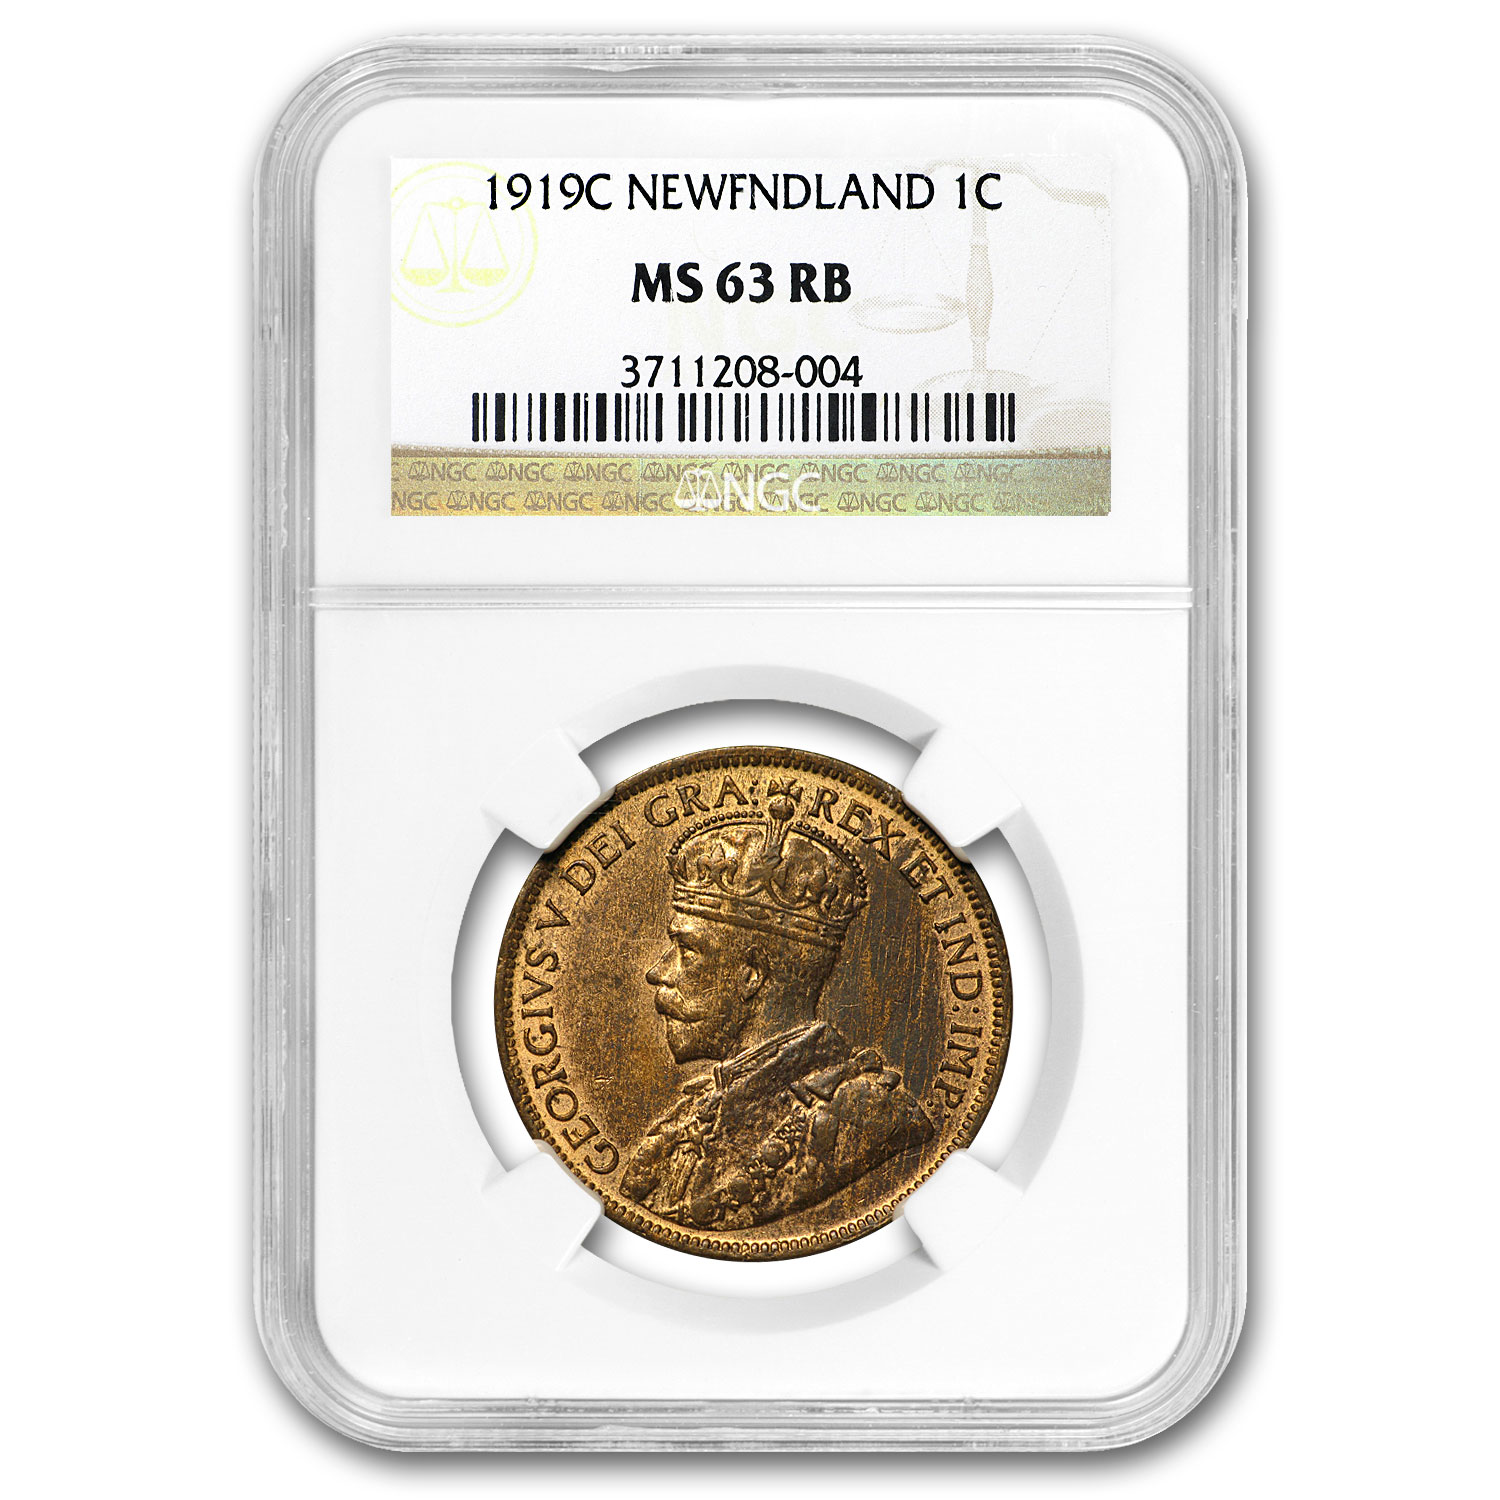 1919-C Newfoundland Large Cent MS-63 RB NGC